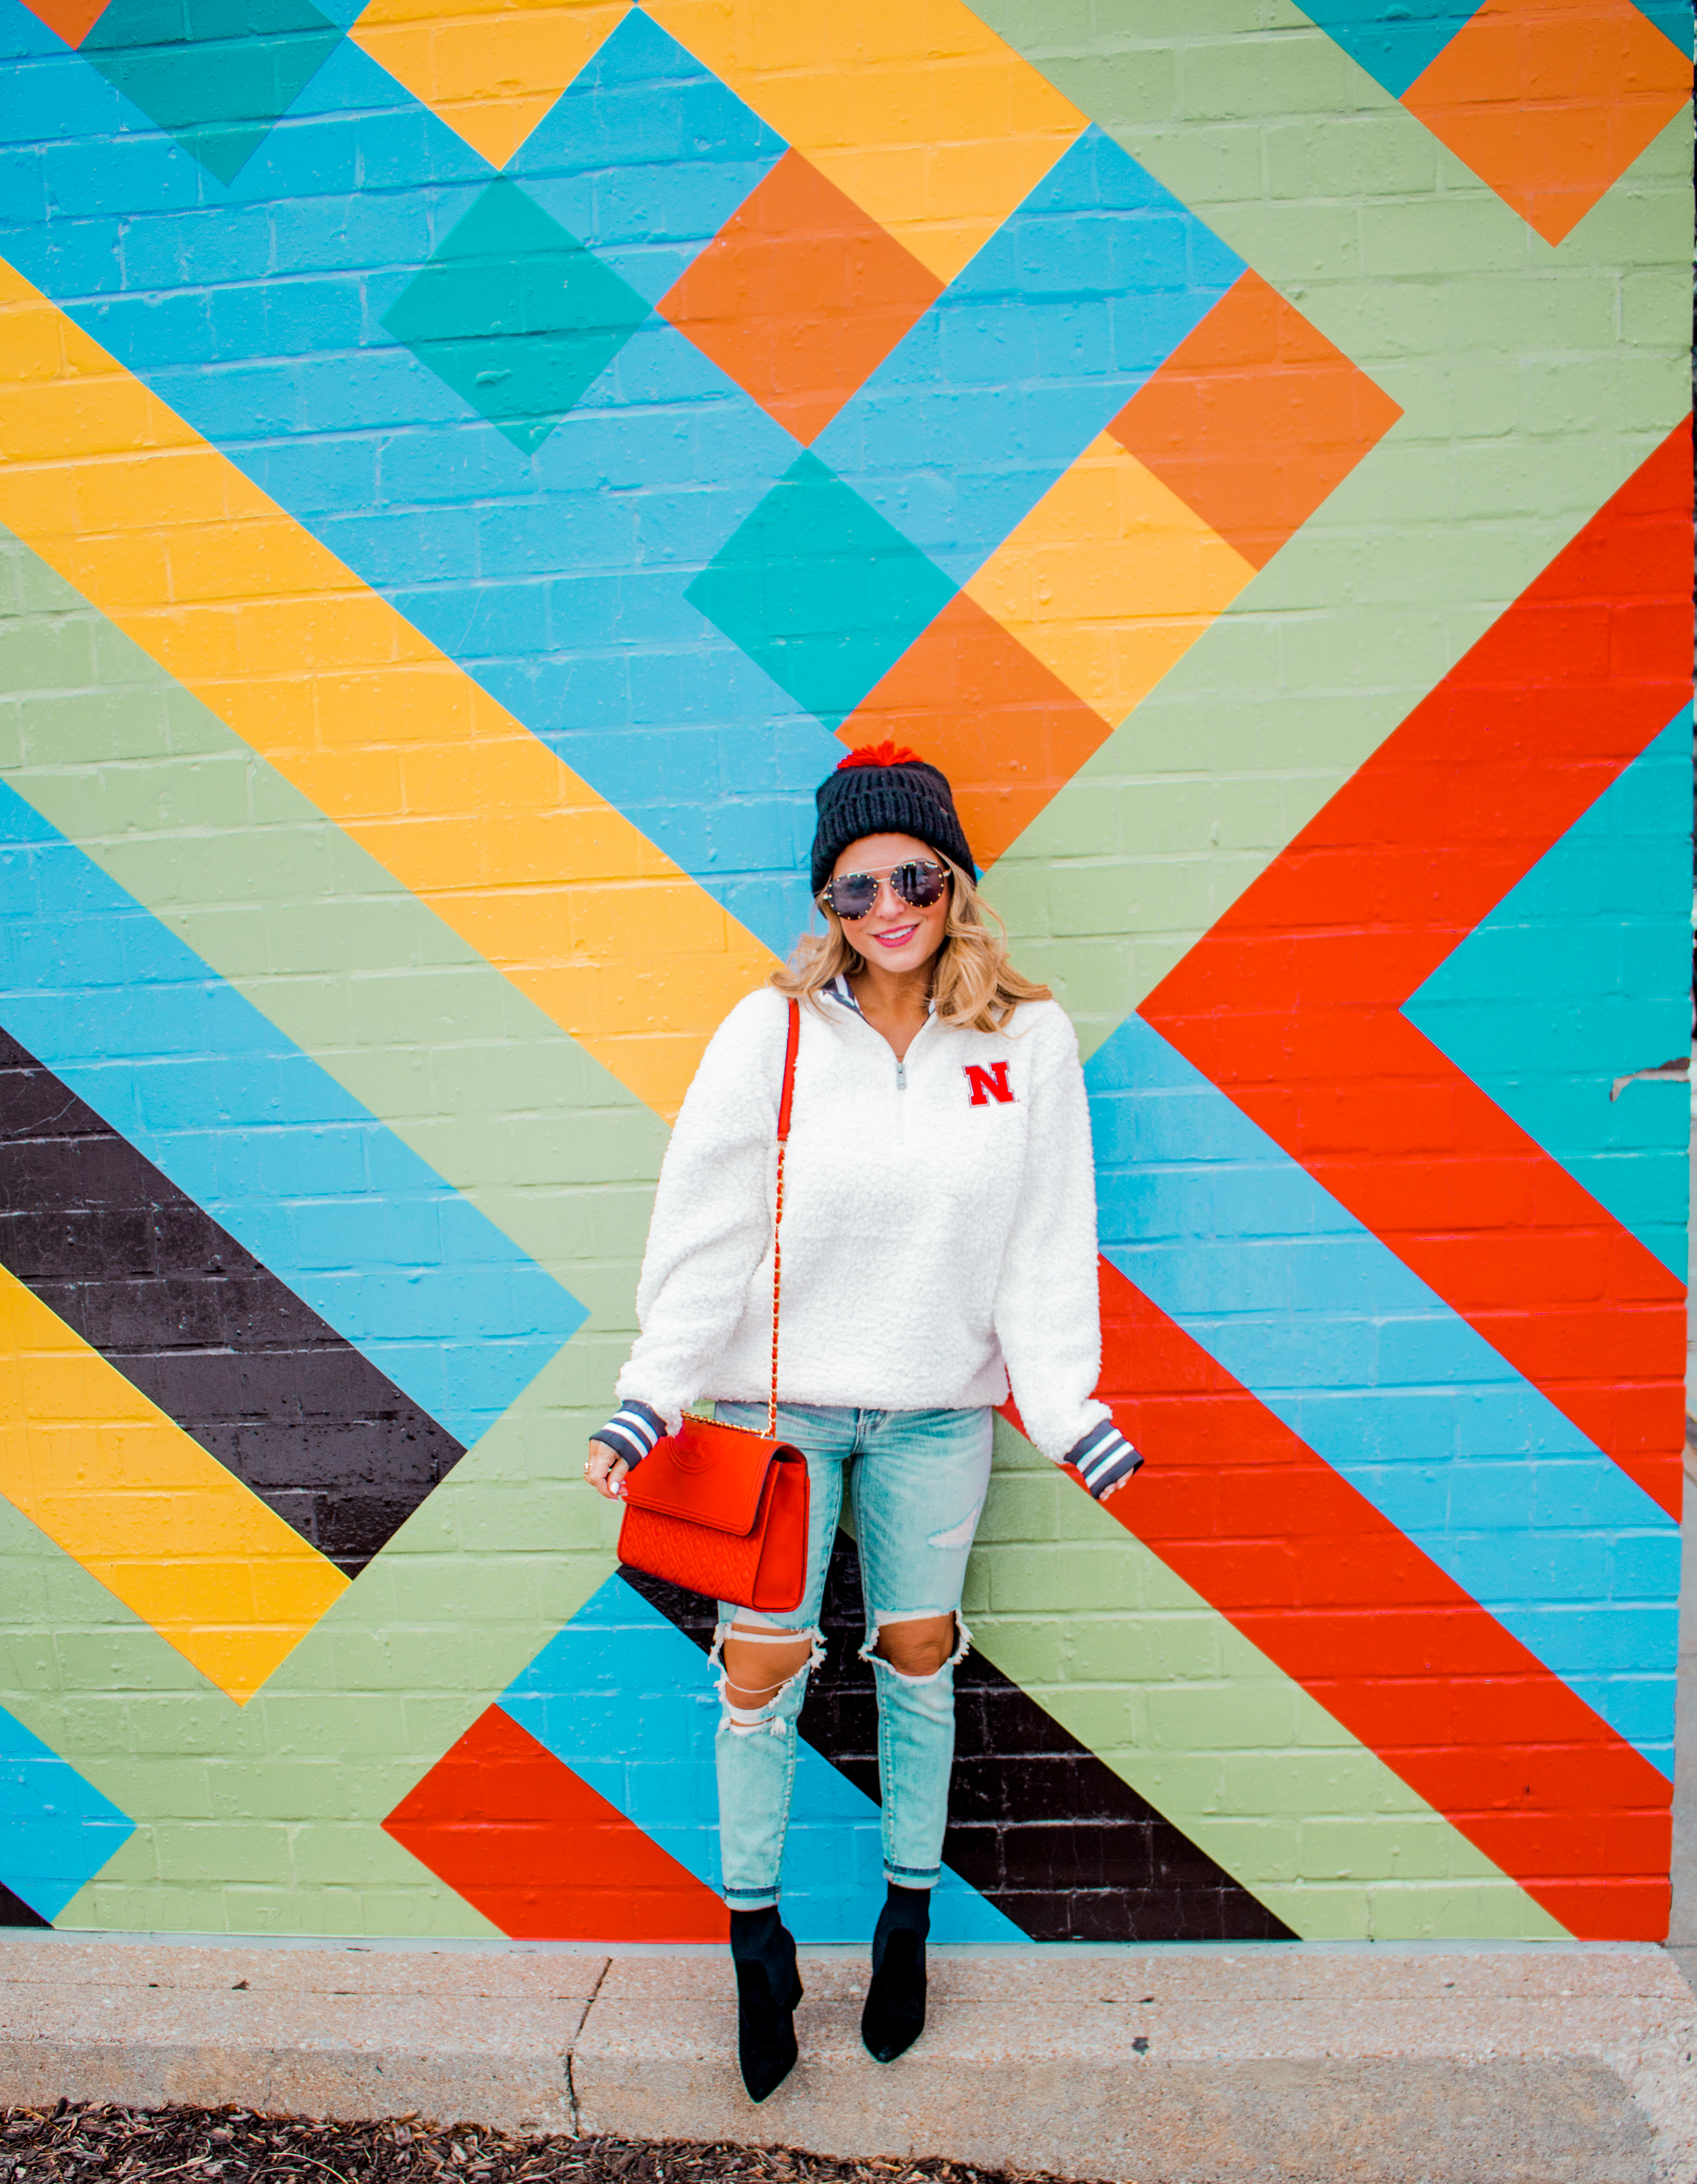 Nebraska - Women's Fashion - Sherpa - Husker - Pullover - Husker Gear - Omaha Blogger - Sabby Style - Casual Outfit - 11